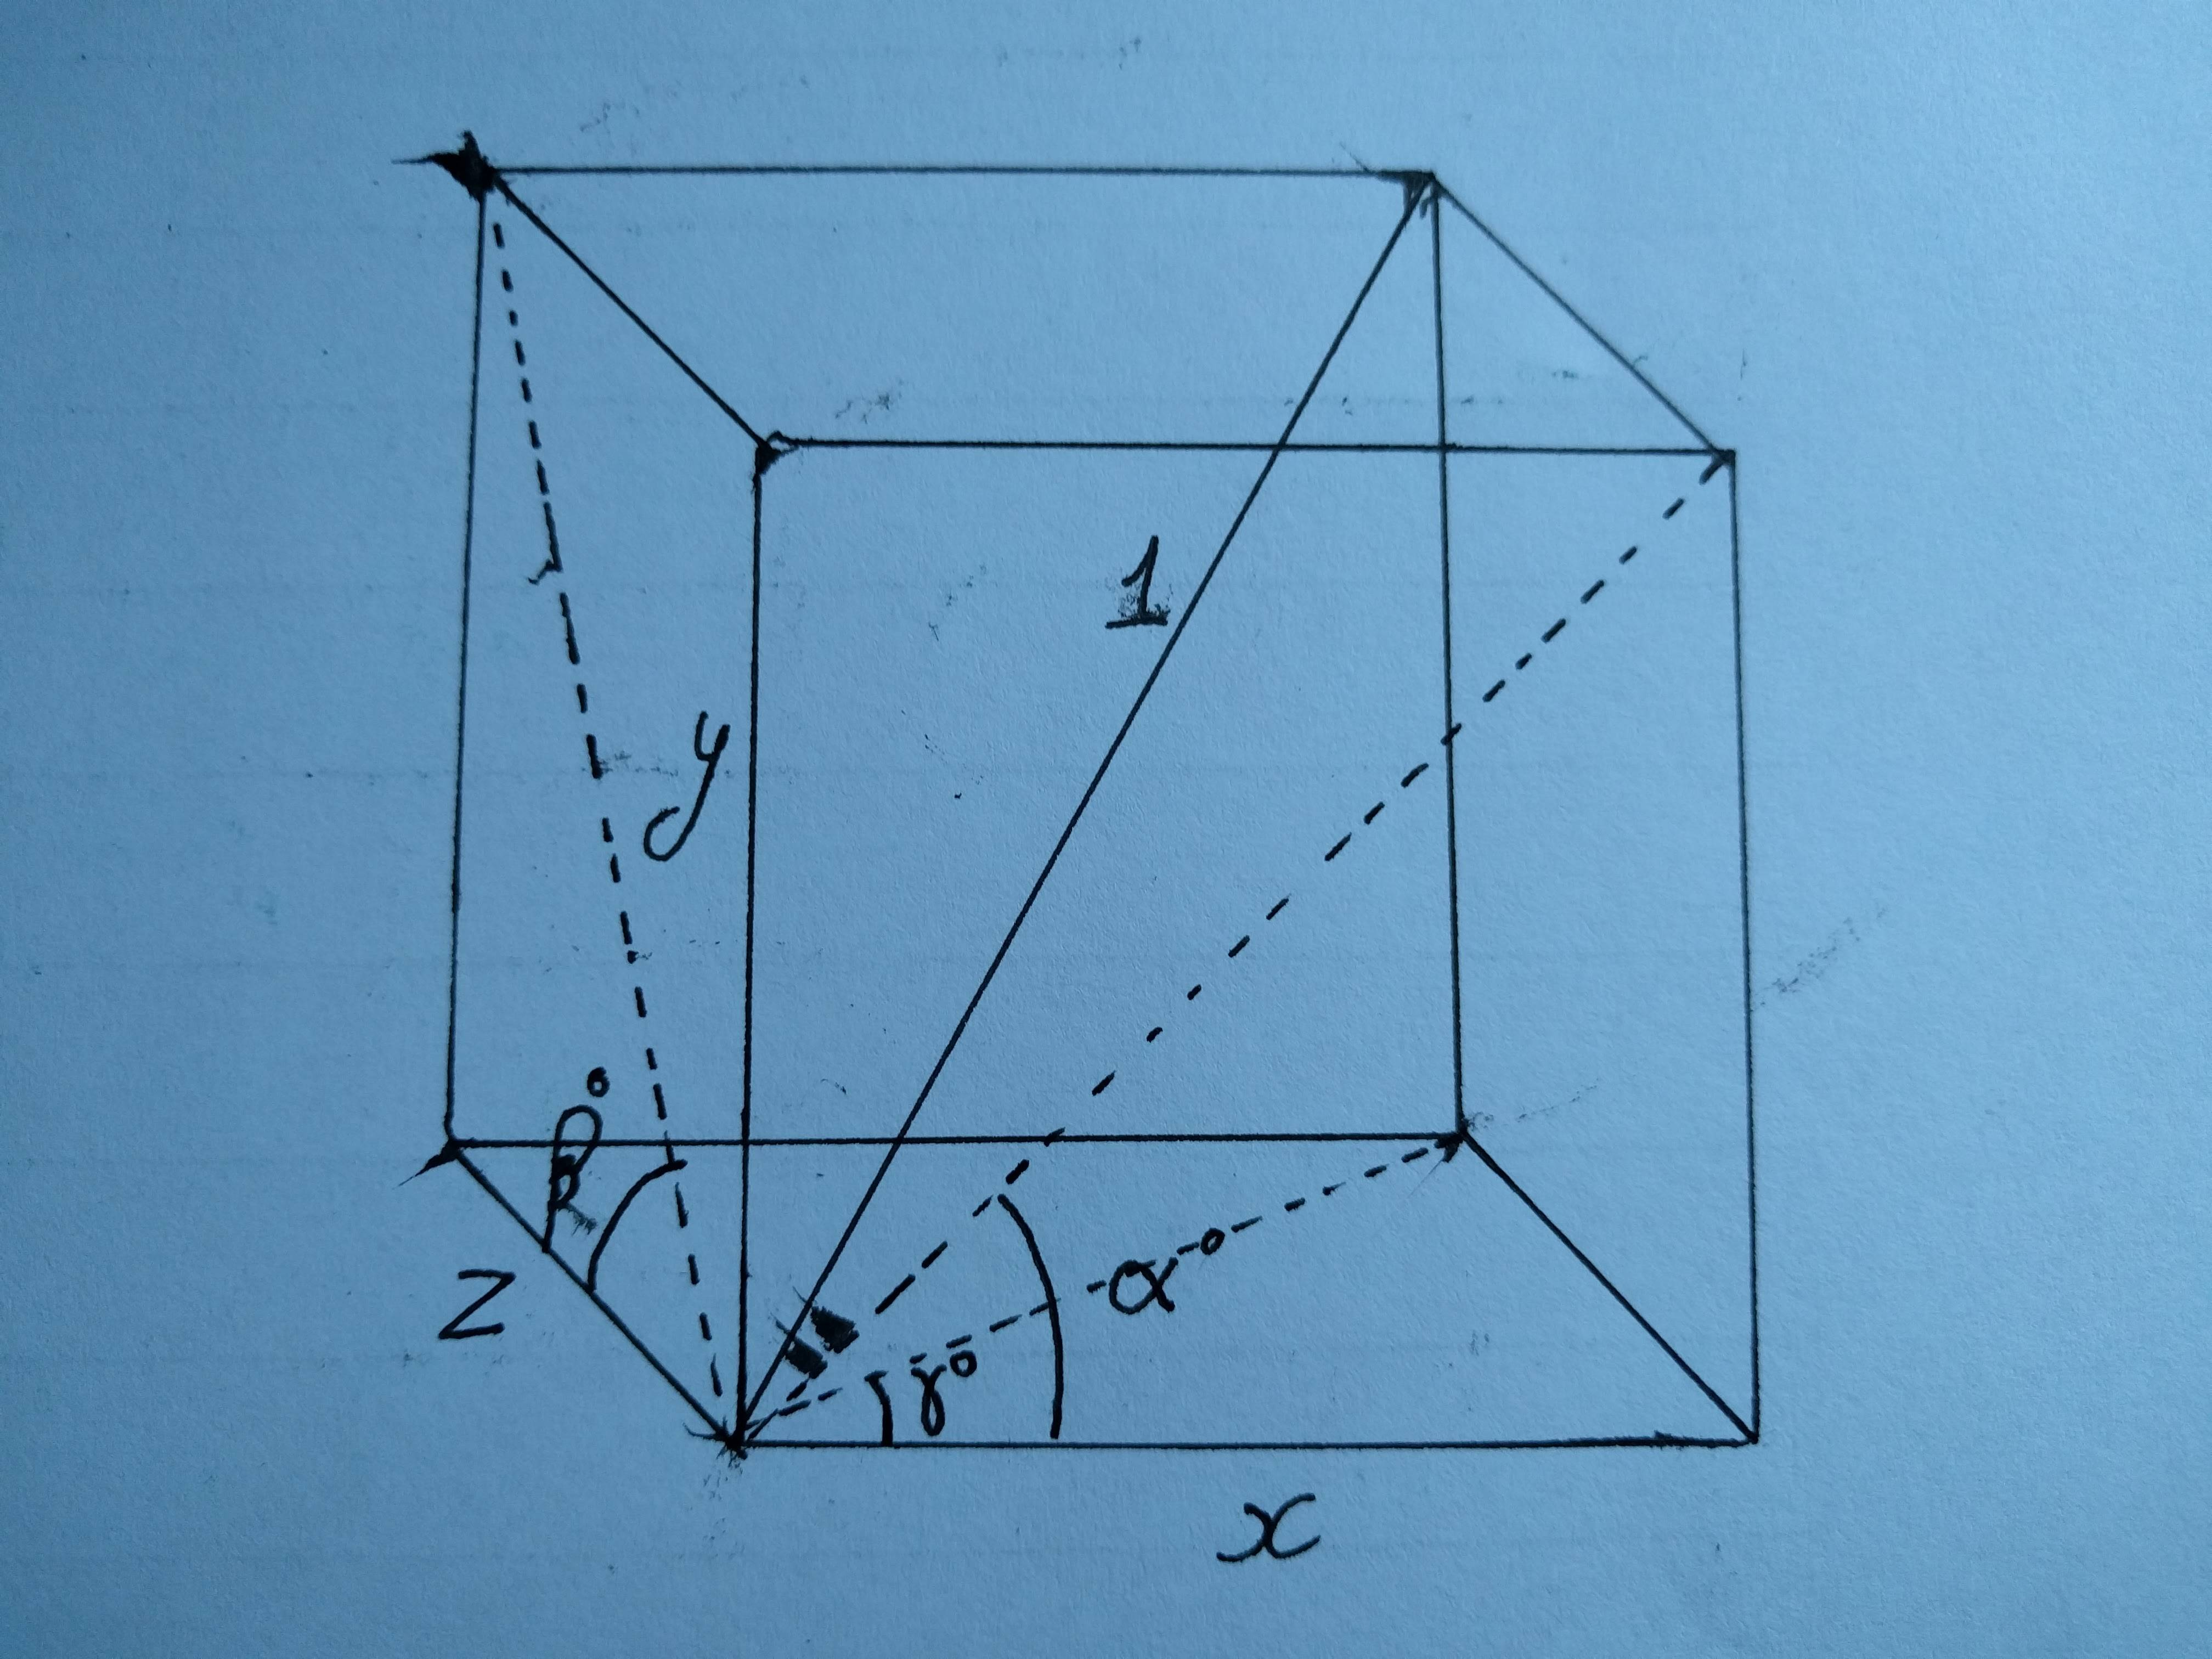 Finding Angles Side Length